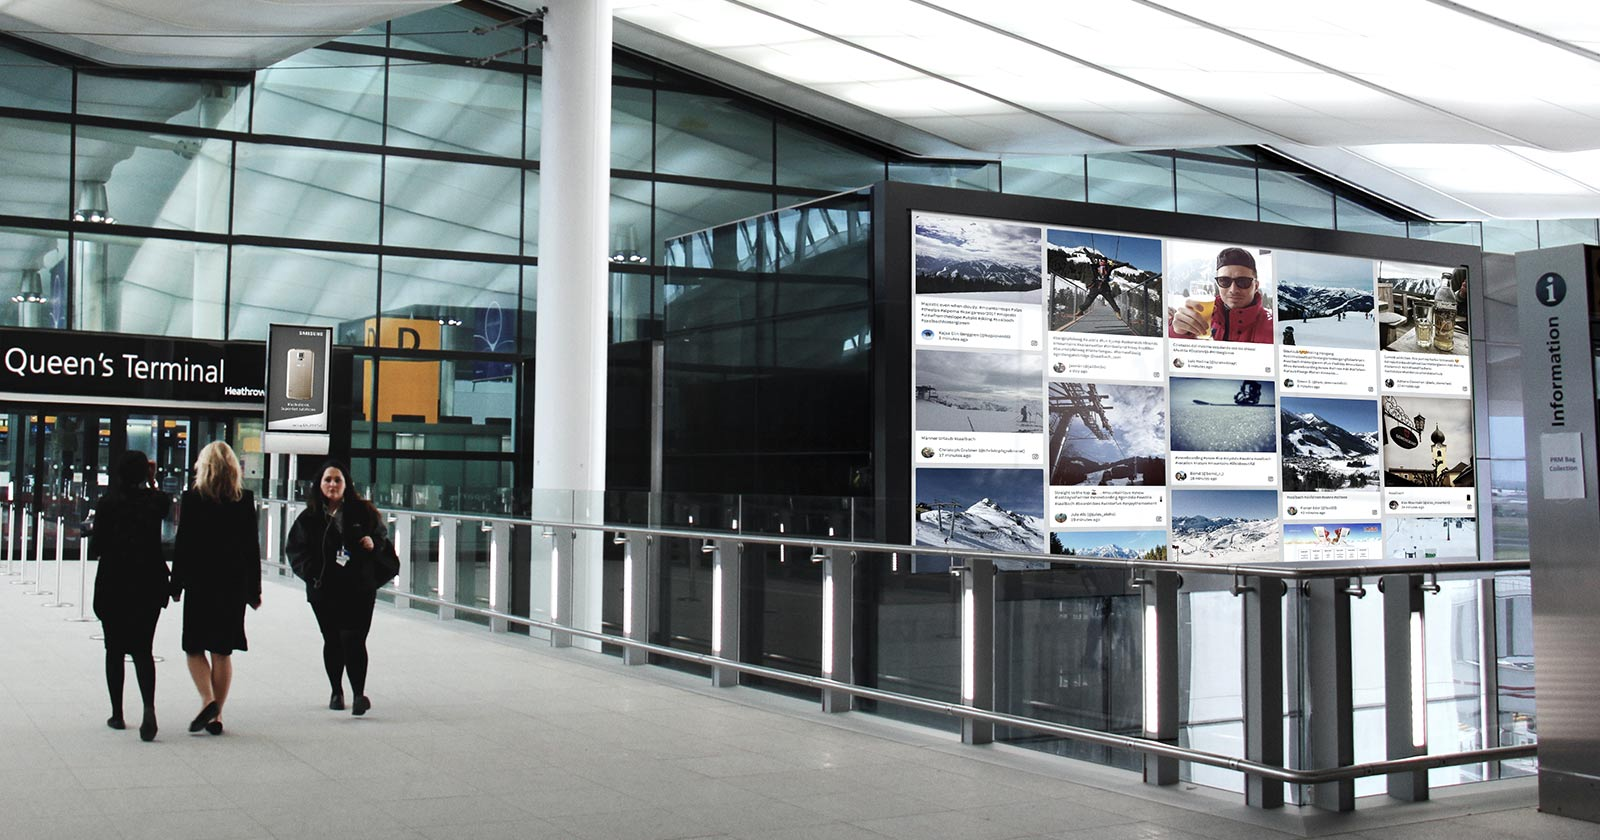 Heathrow airport showing a large digital signage screen with a social wall displayed on it.